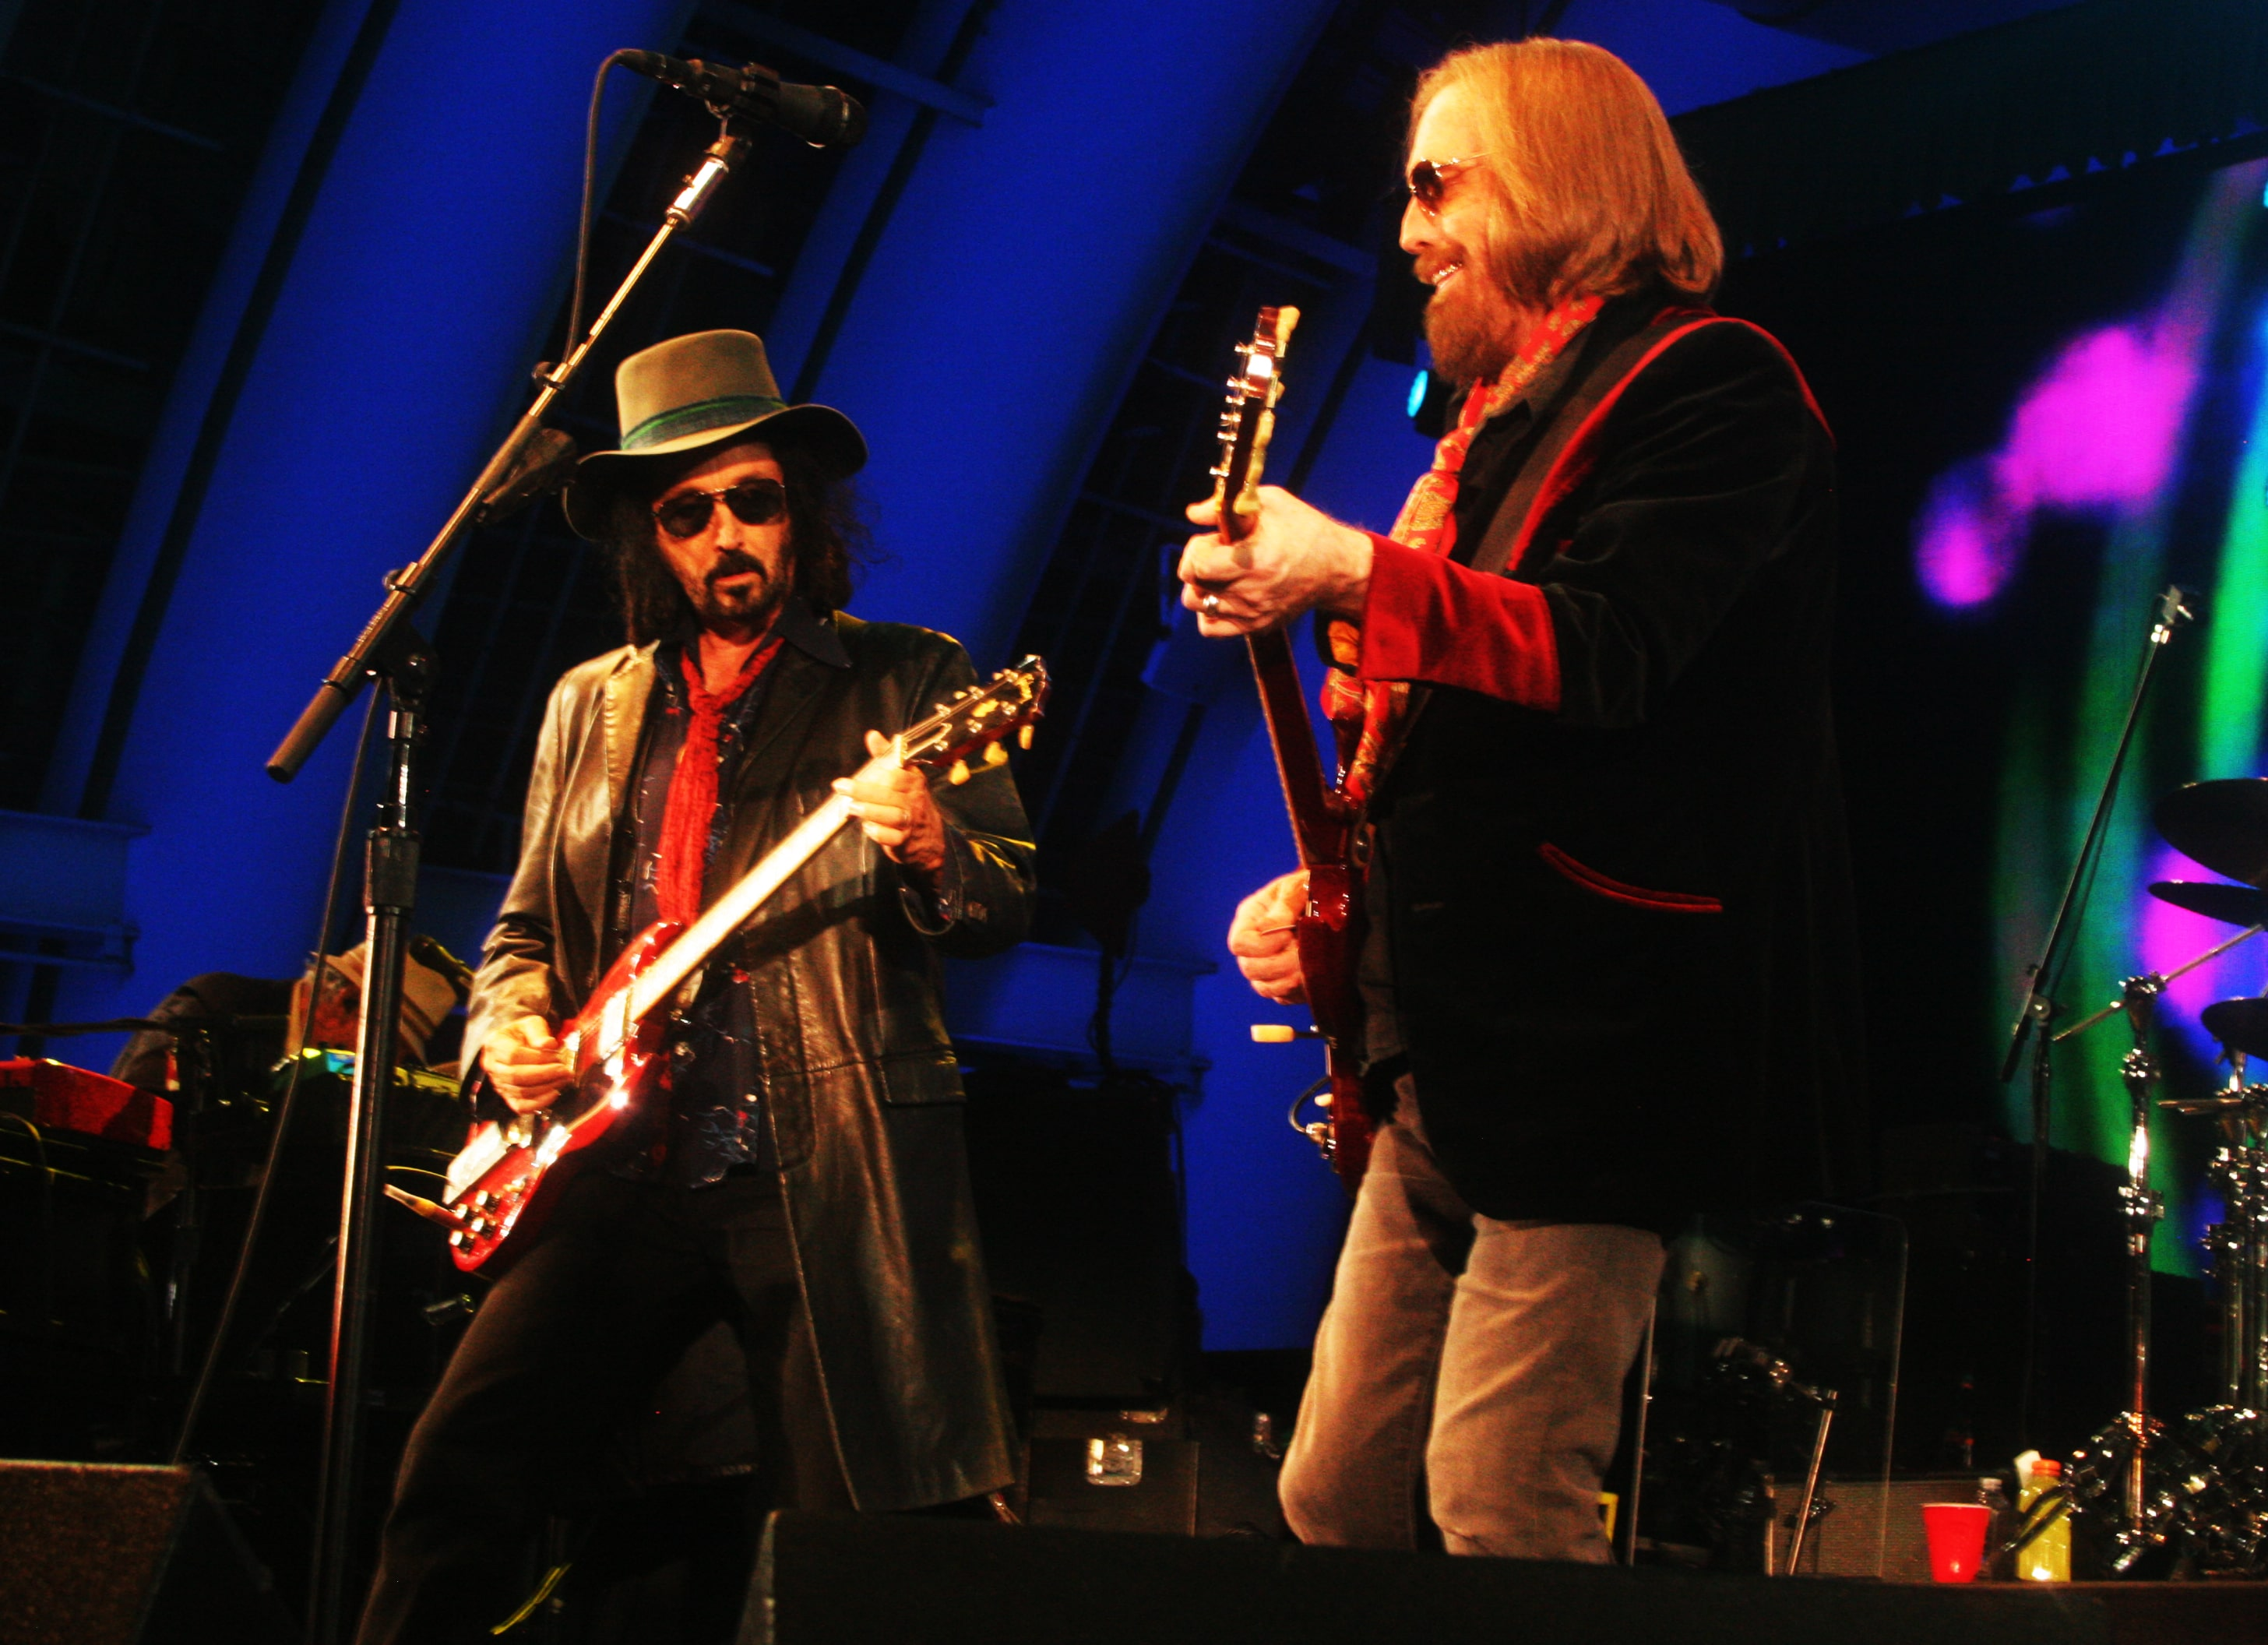 in photos tom petty and the heartbreakers 39 final show at hollywood bowl in los angeles. Black Bedroom Furniture Sets. Home Design Ideas